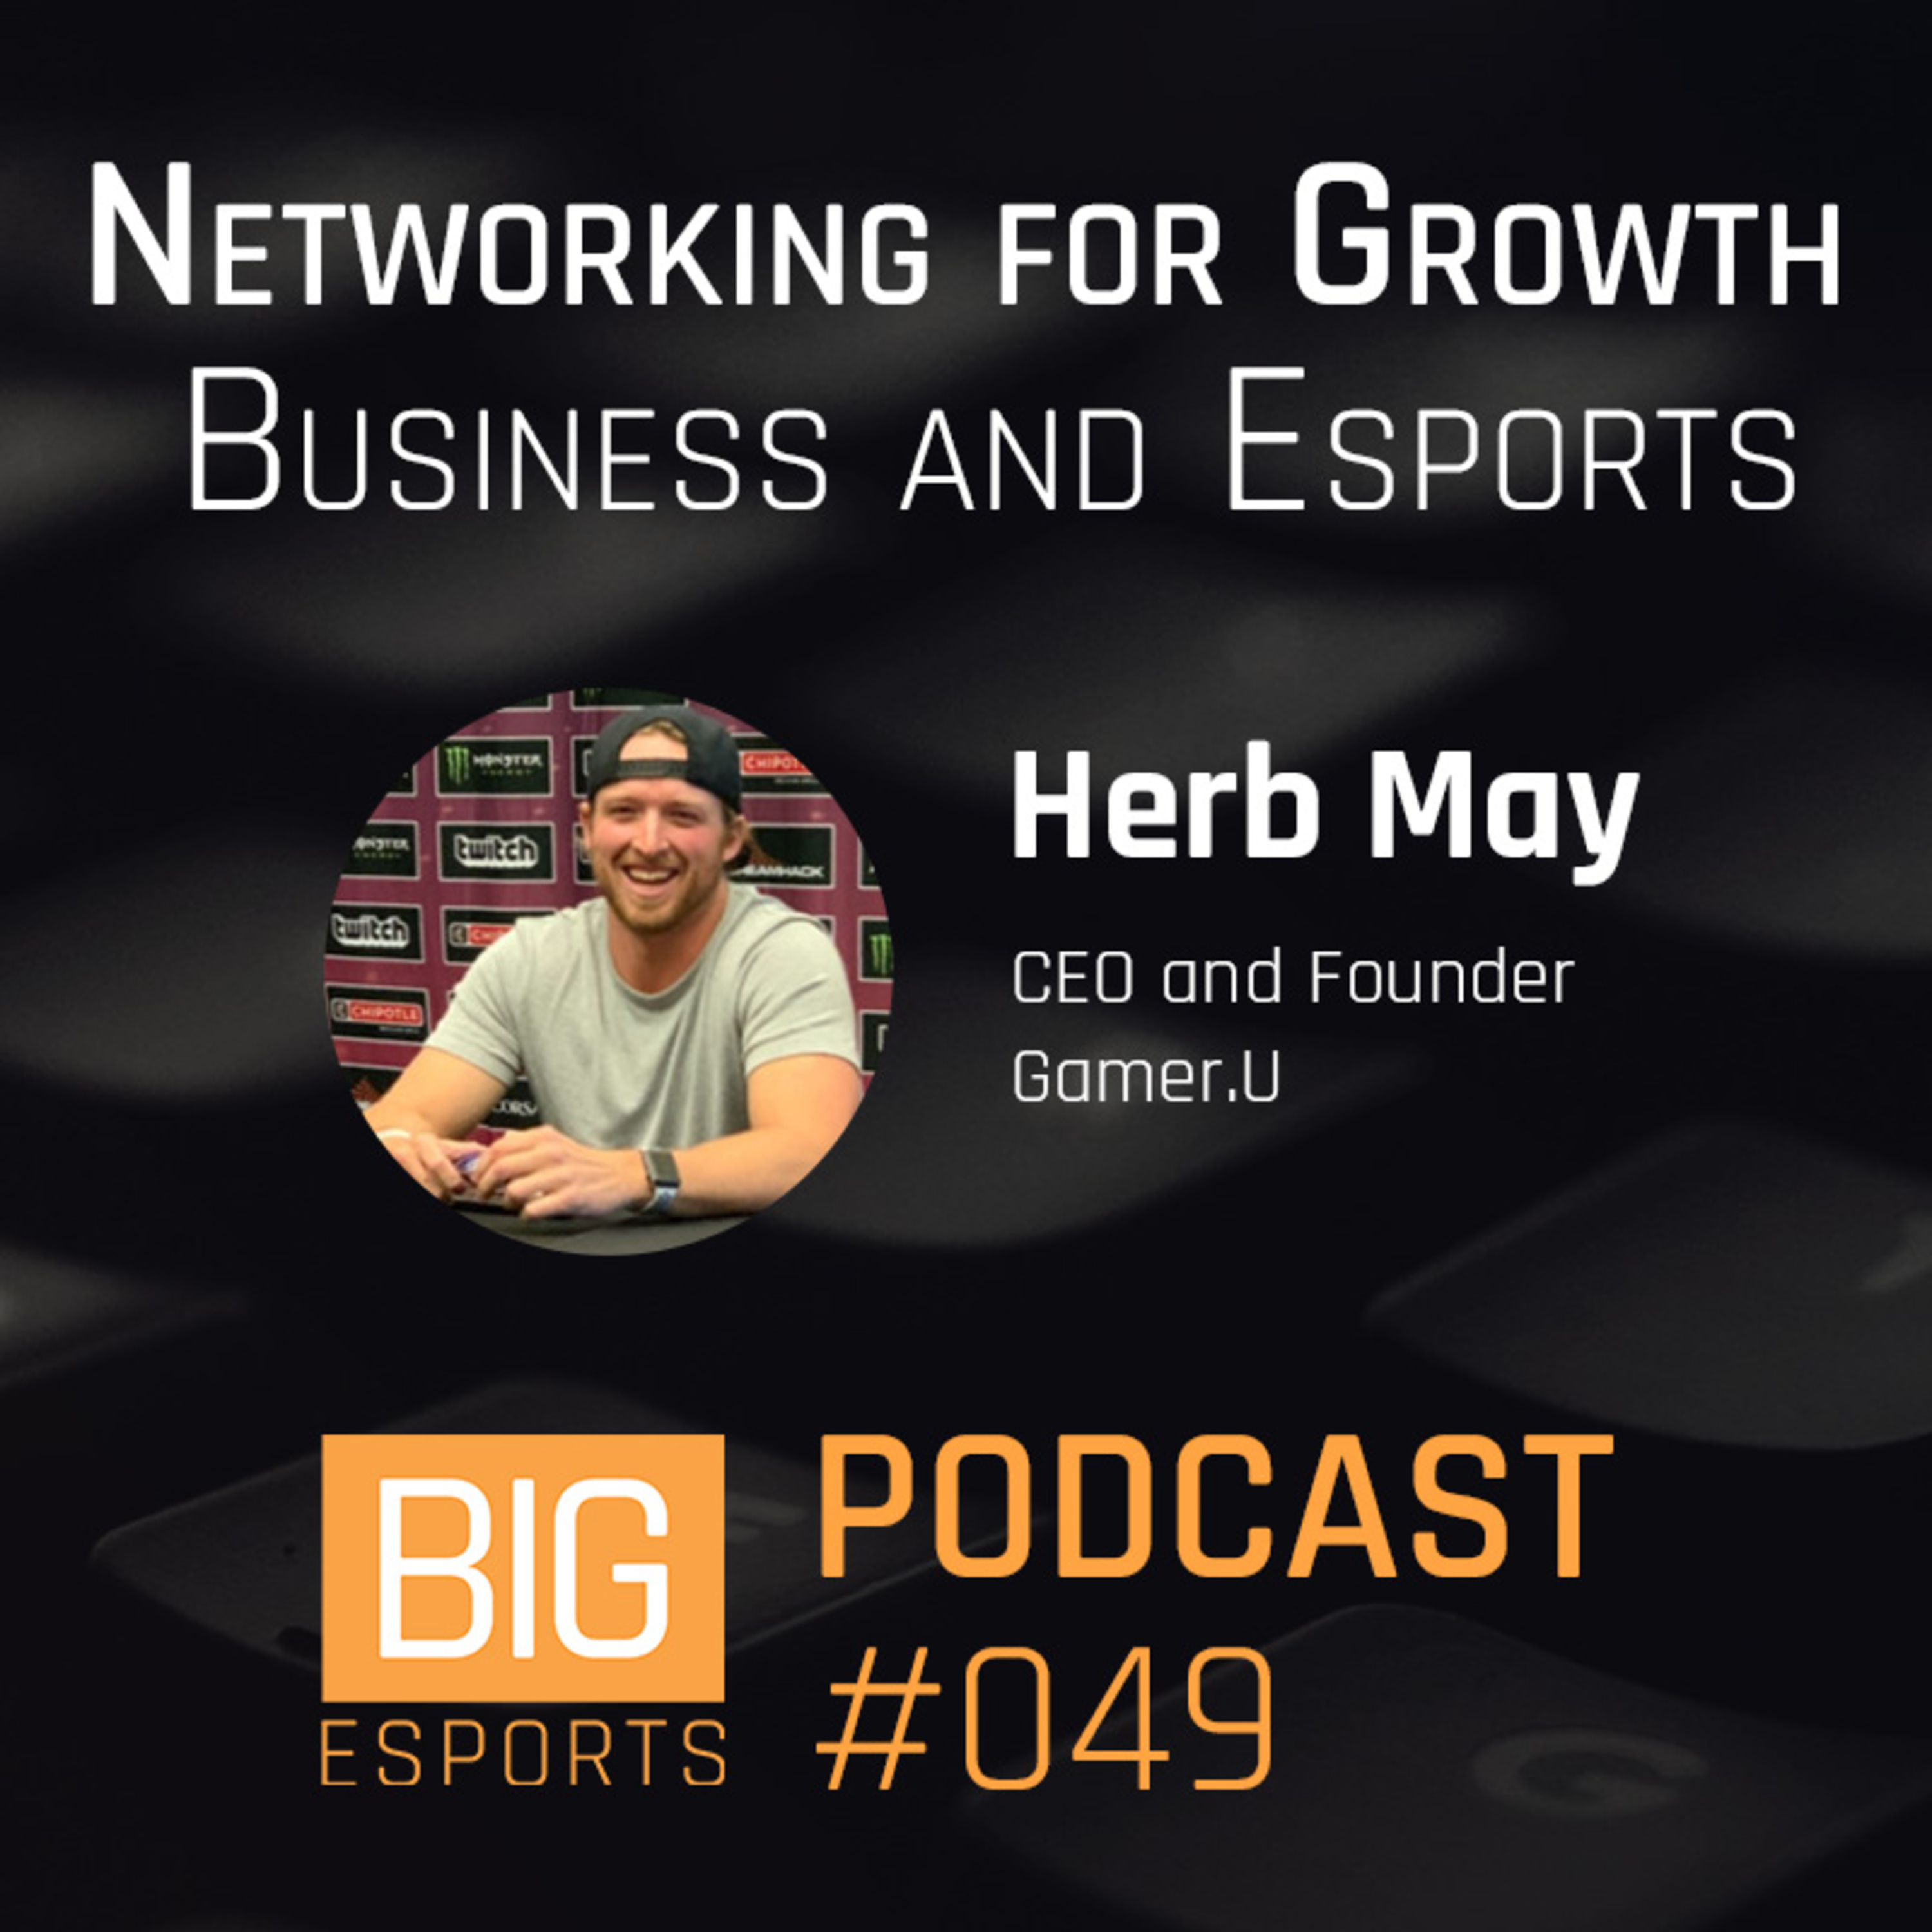 #049 - Networking for Growth, Business and Esports